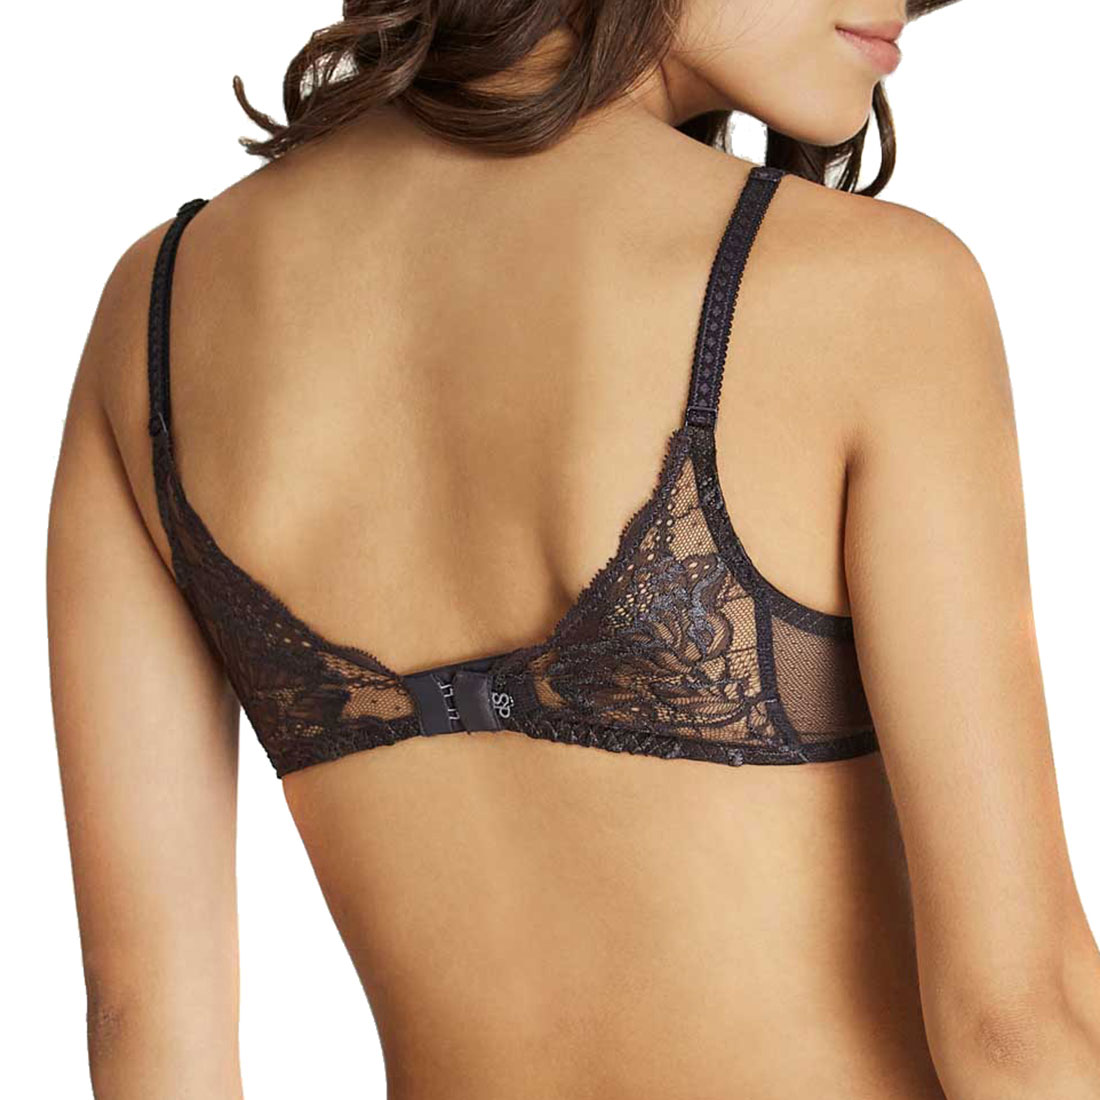 84659bb2bd707 Promesse Half Cup Bra by Simone Perele | Storm in a D Cup AUS